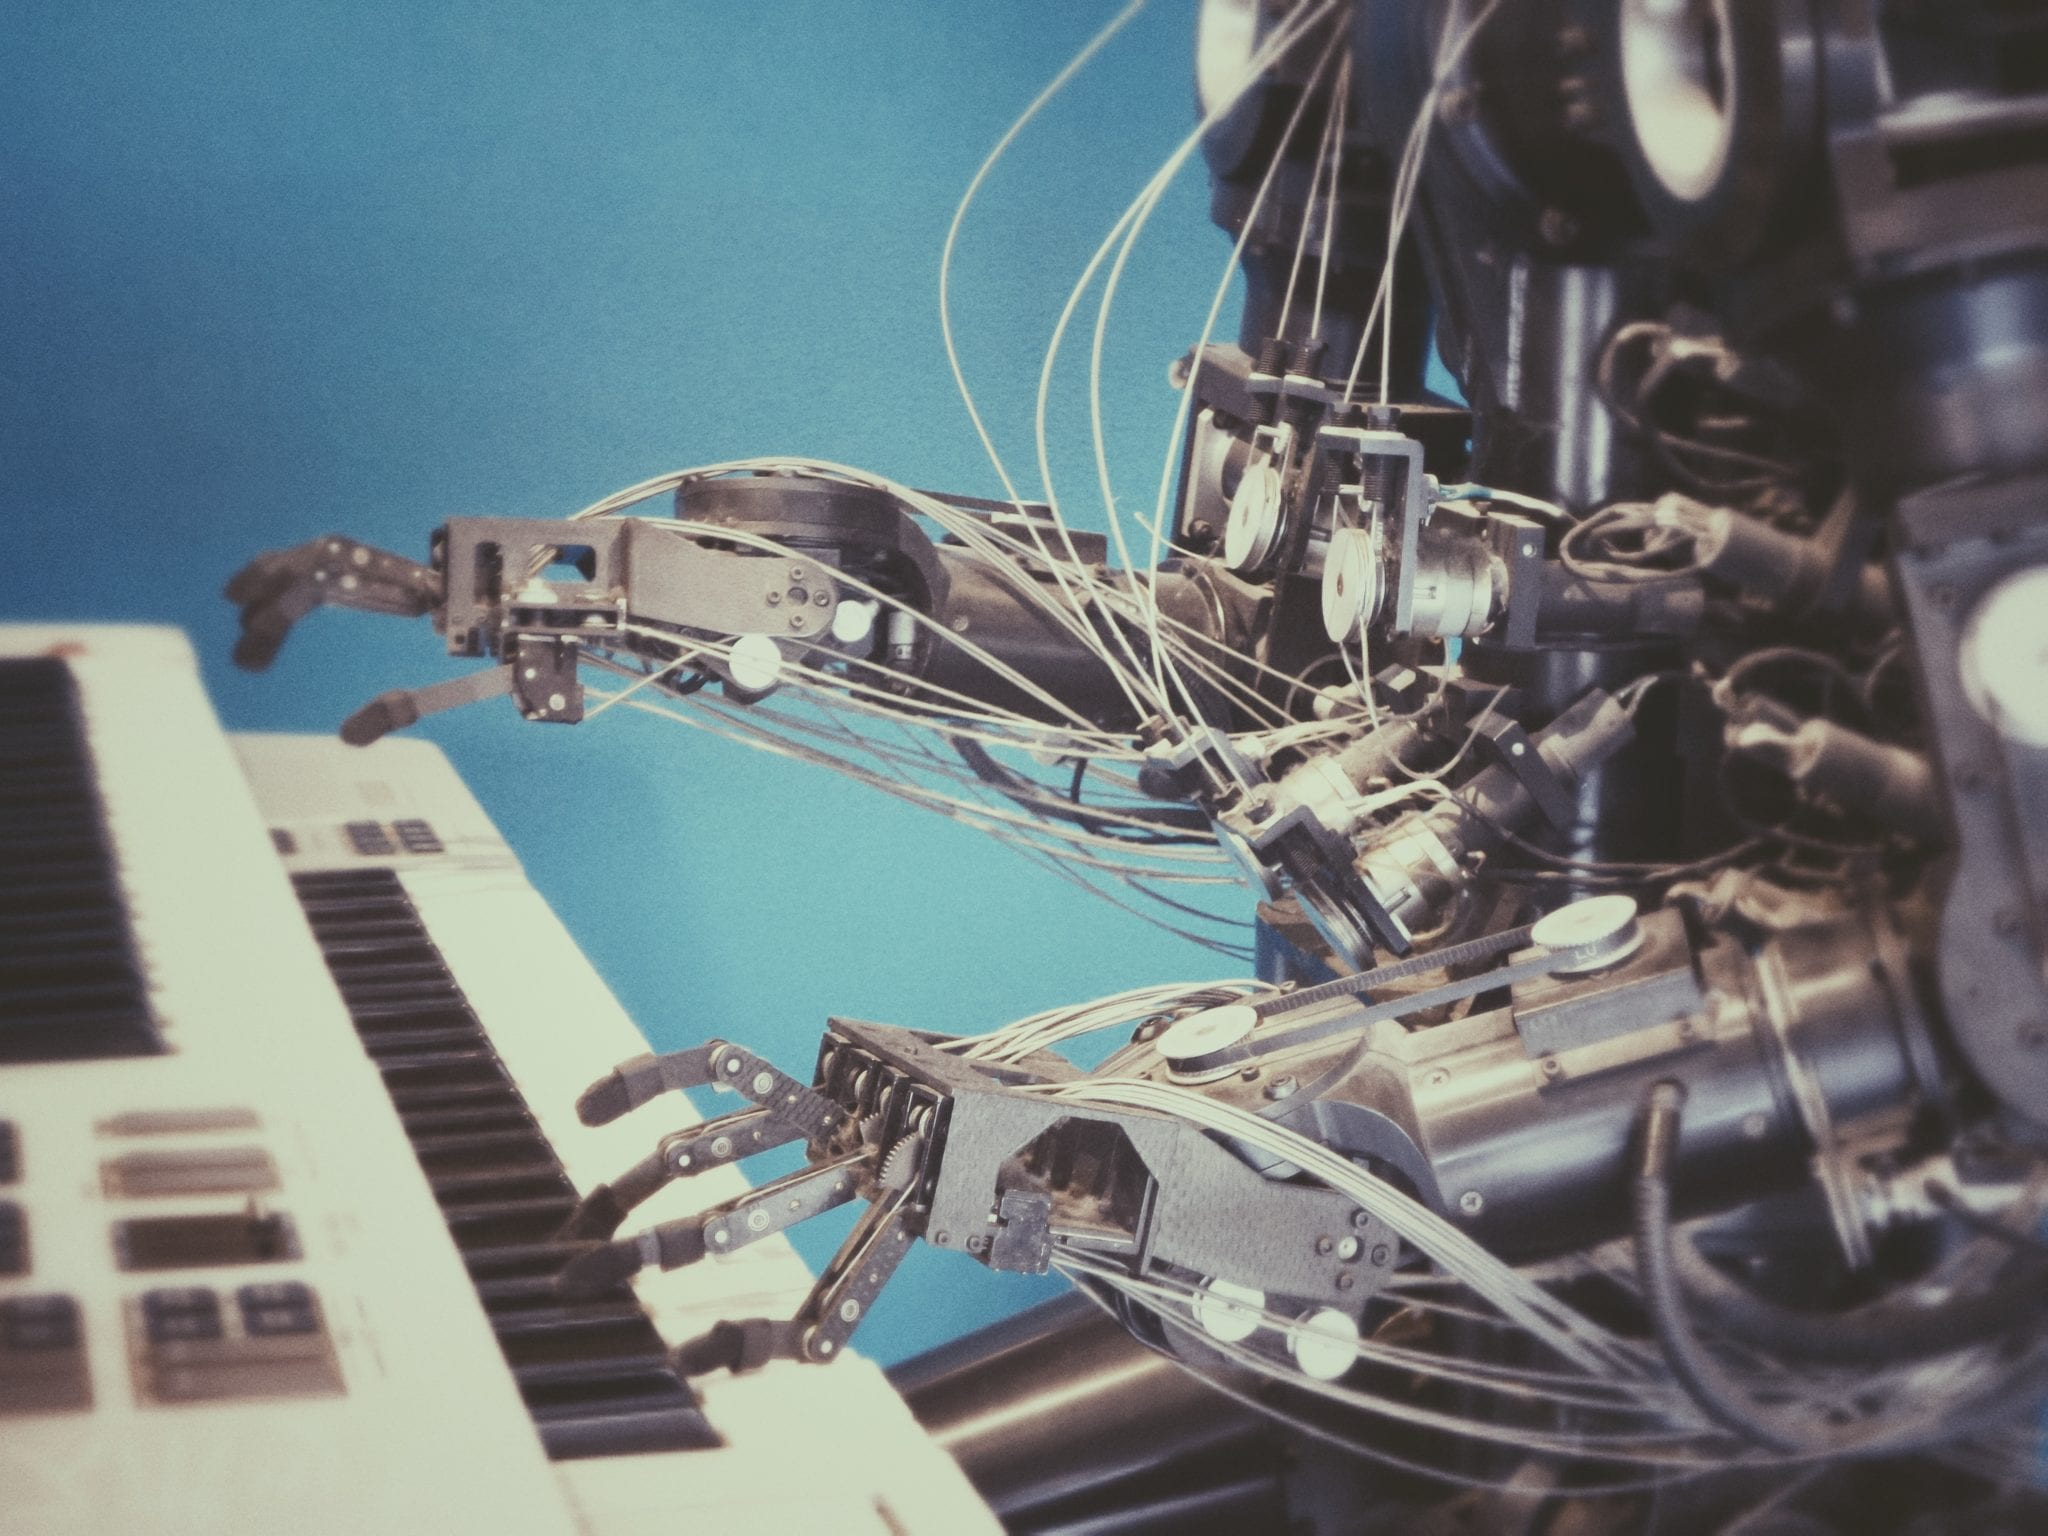 Automation Engagement Flow represented by robot playing keyboard